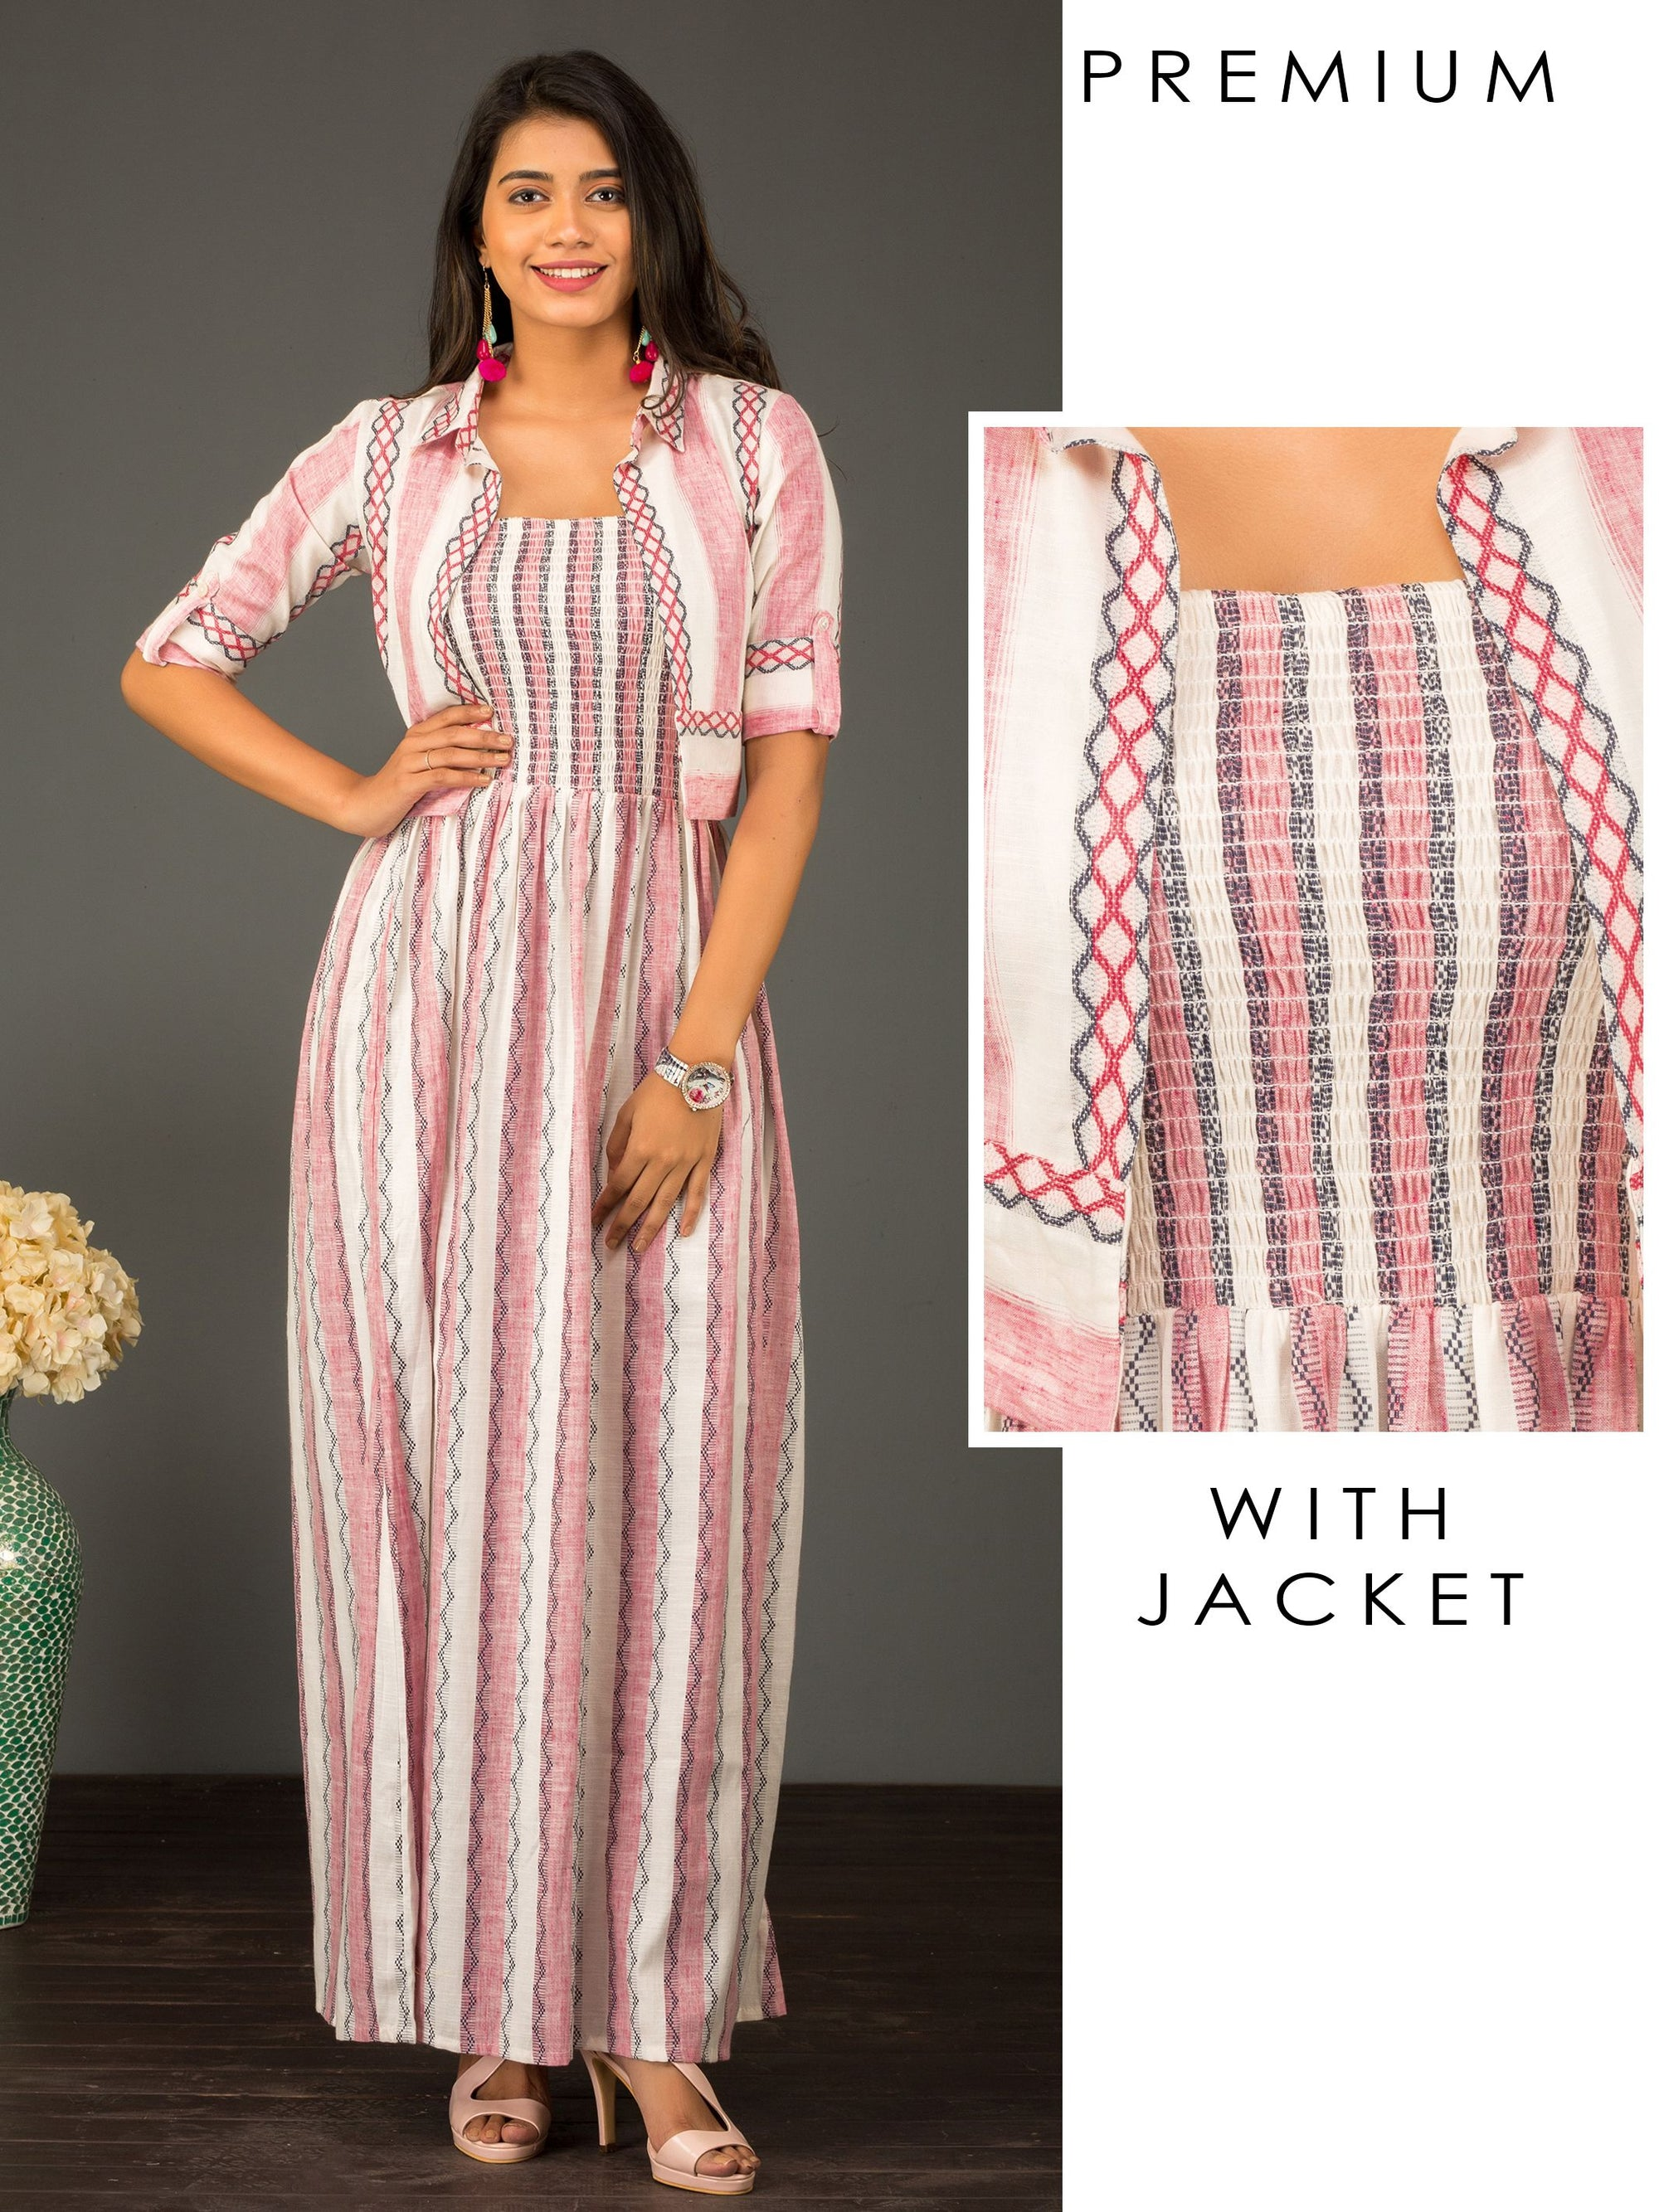 Chevron Printed Jacket with Cabana Striped Smocking Maxi – Taffy Pink